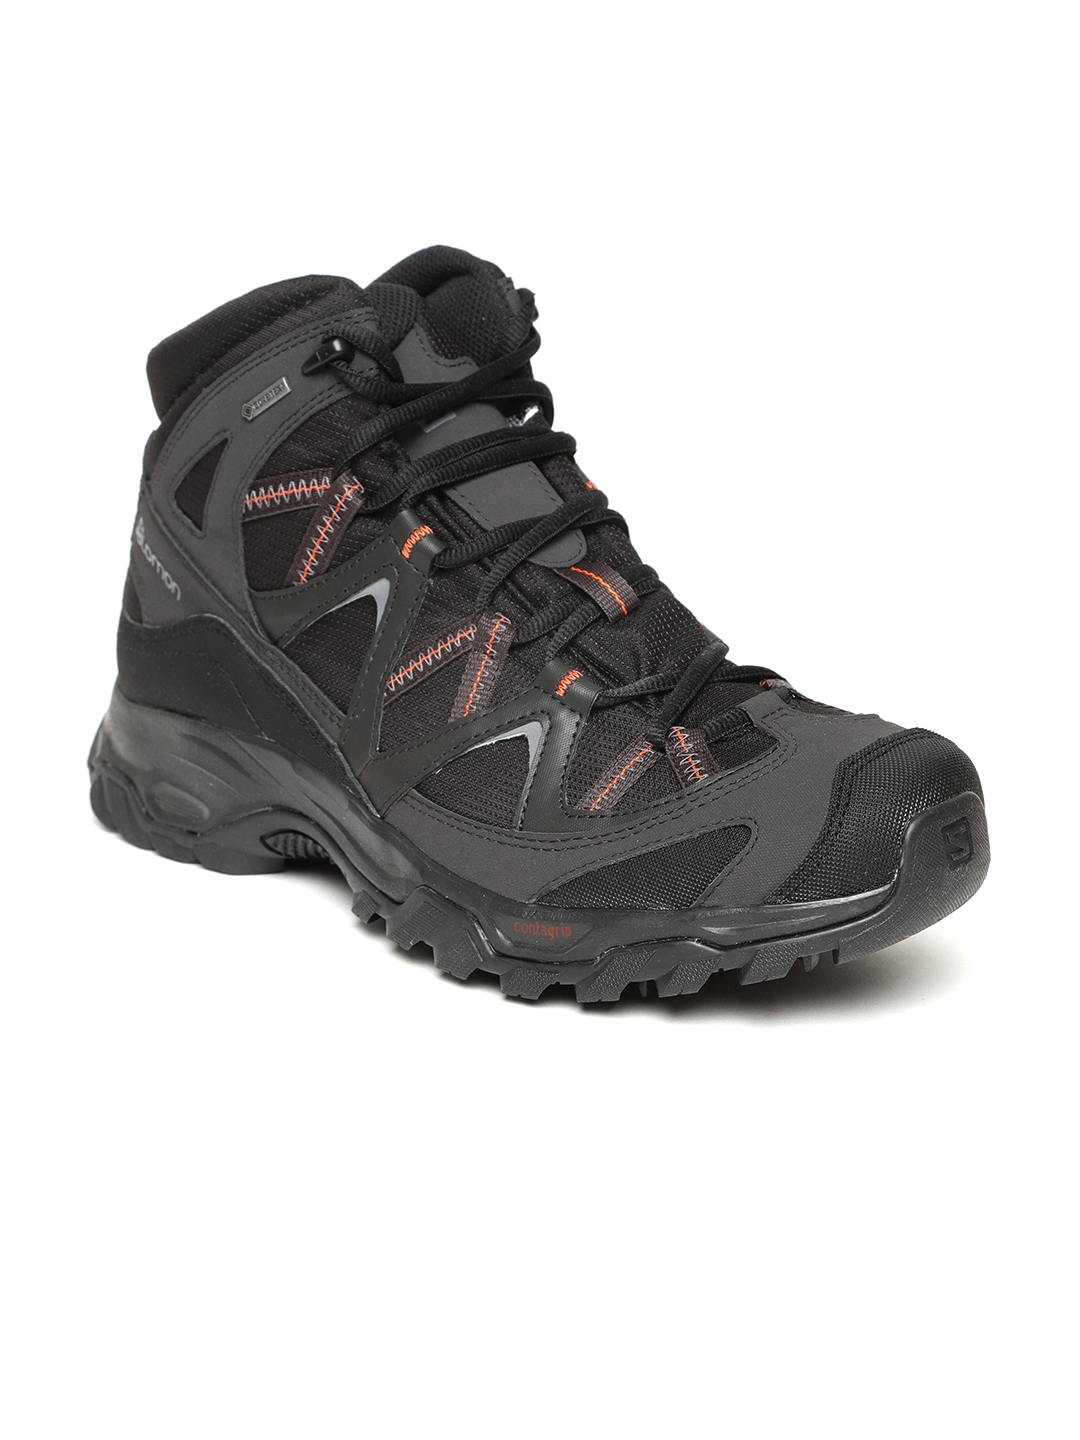 bc6a3bf5bc59 Buy Salomon Men Black CAGLIARI Mid GTX Mid Top Trekking Shoes ...